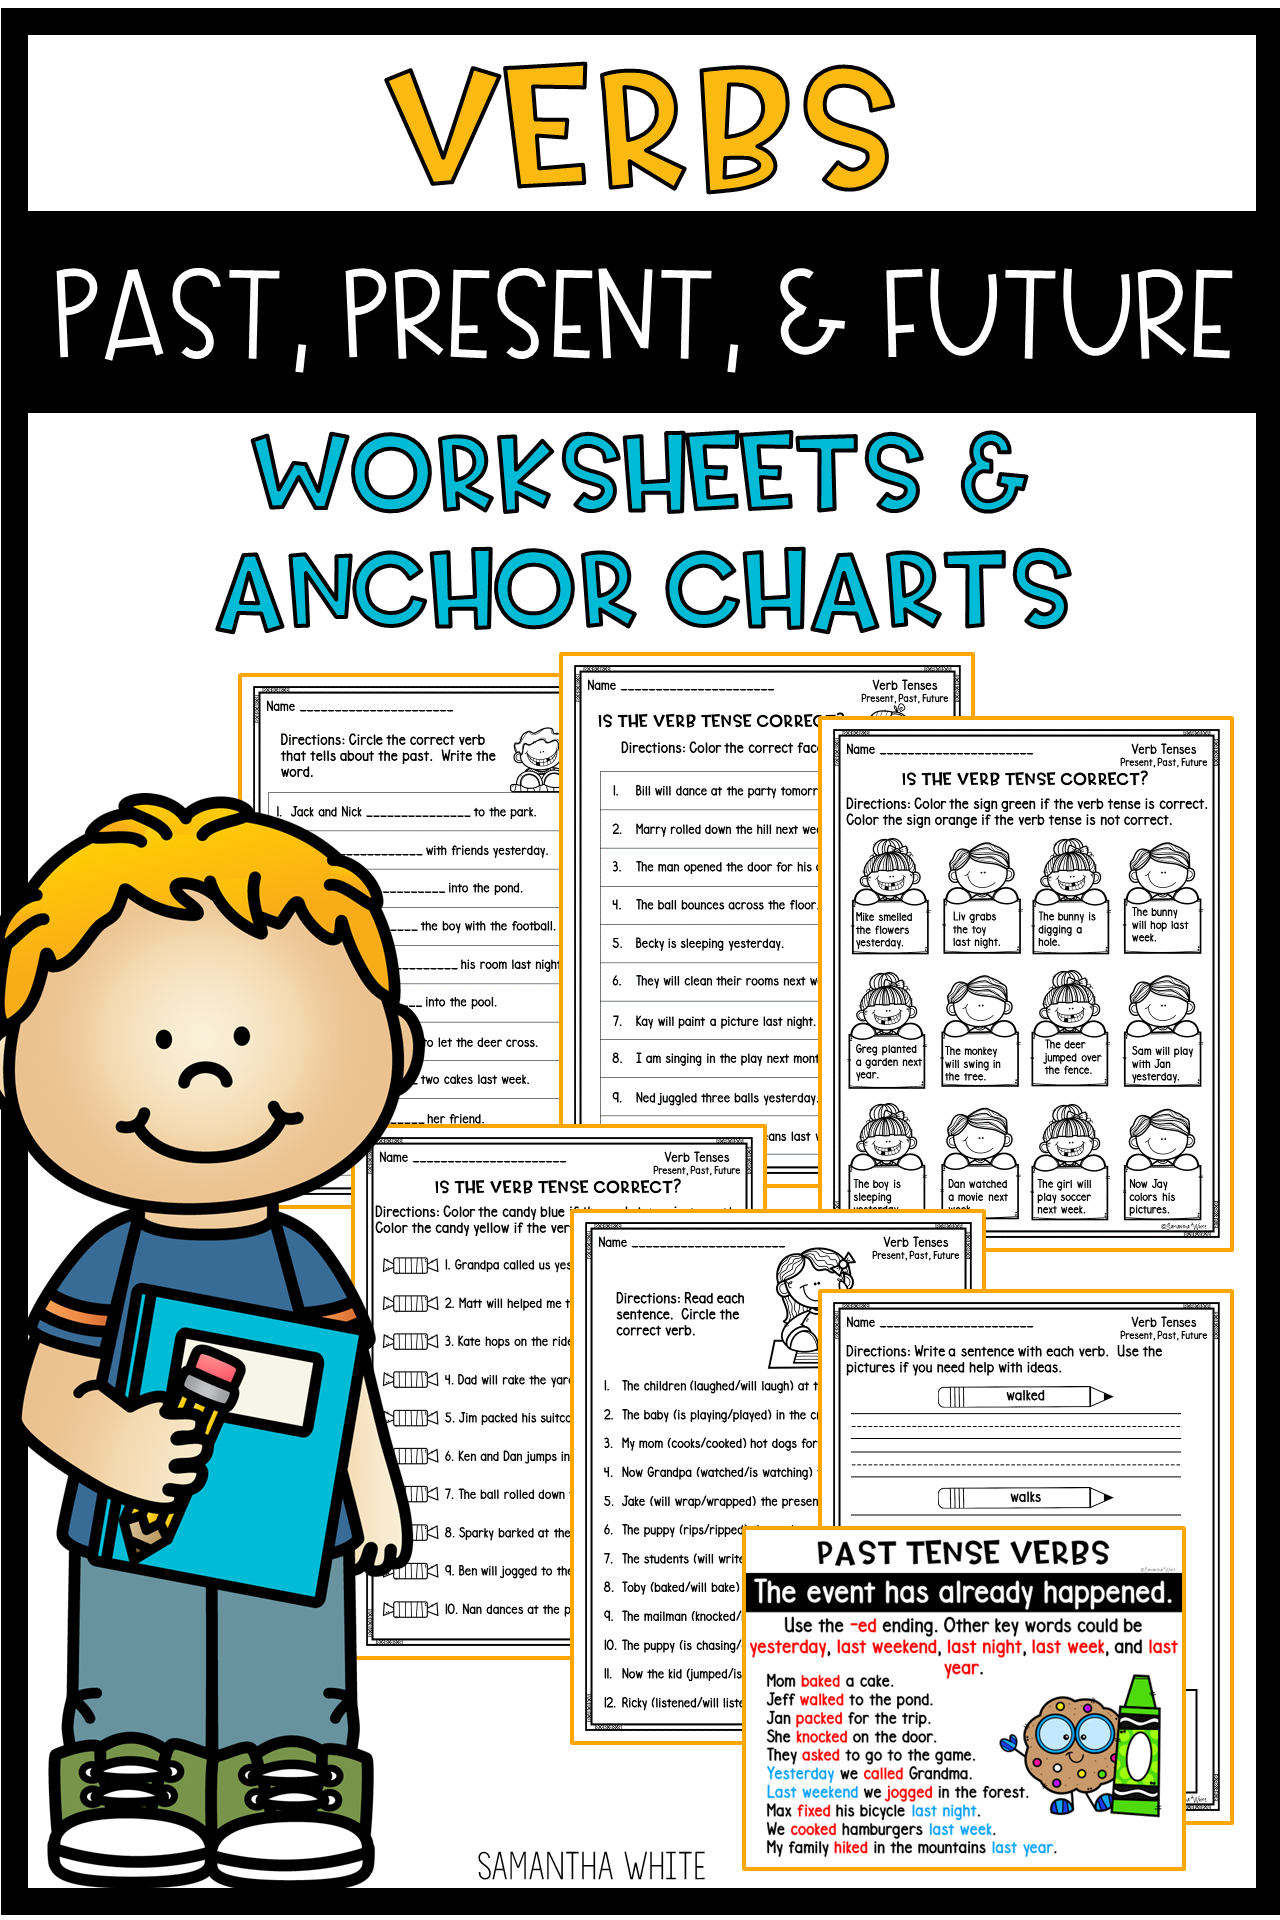 Verbs Past Present And Future Worksheets Amp Anchor Charts